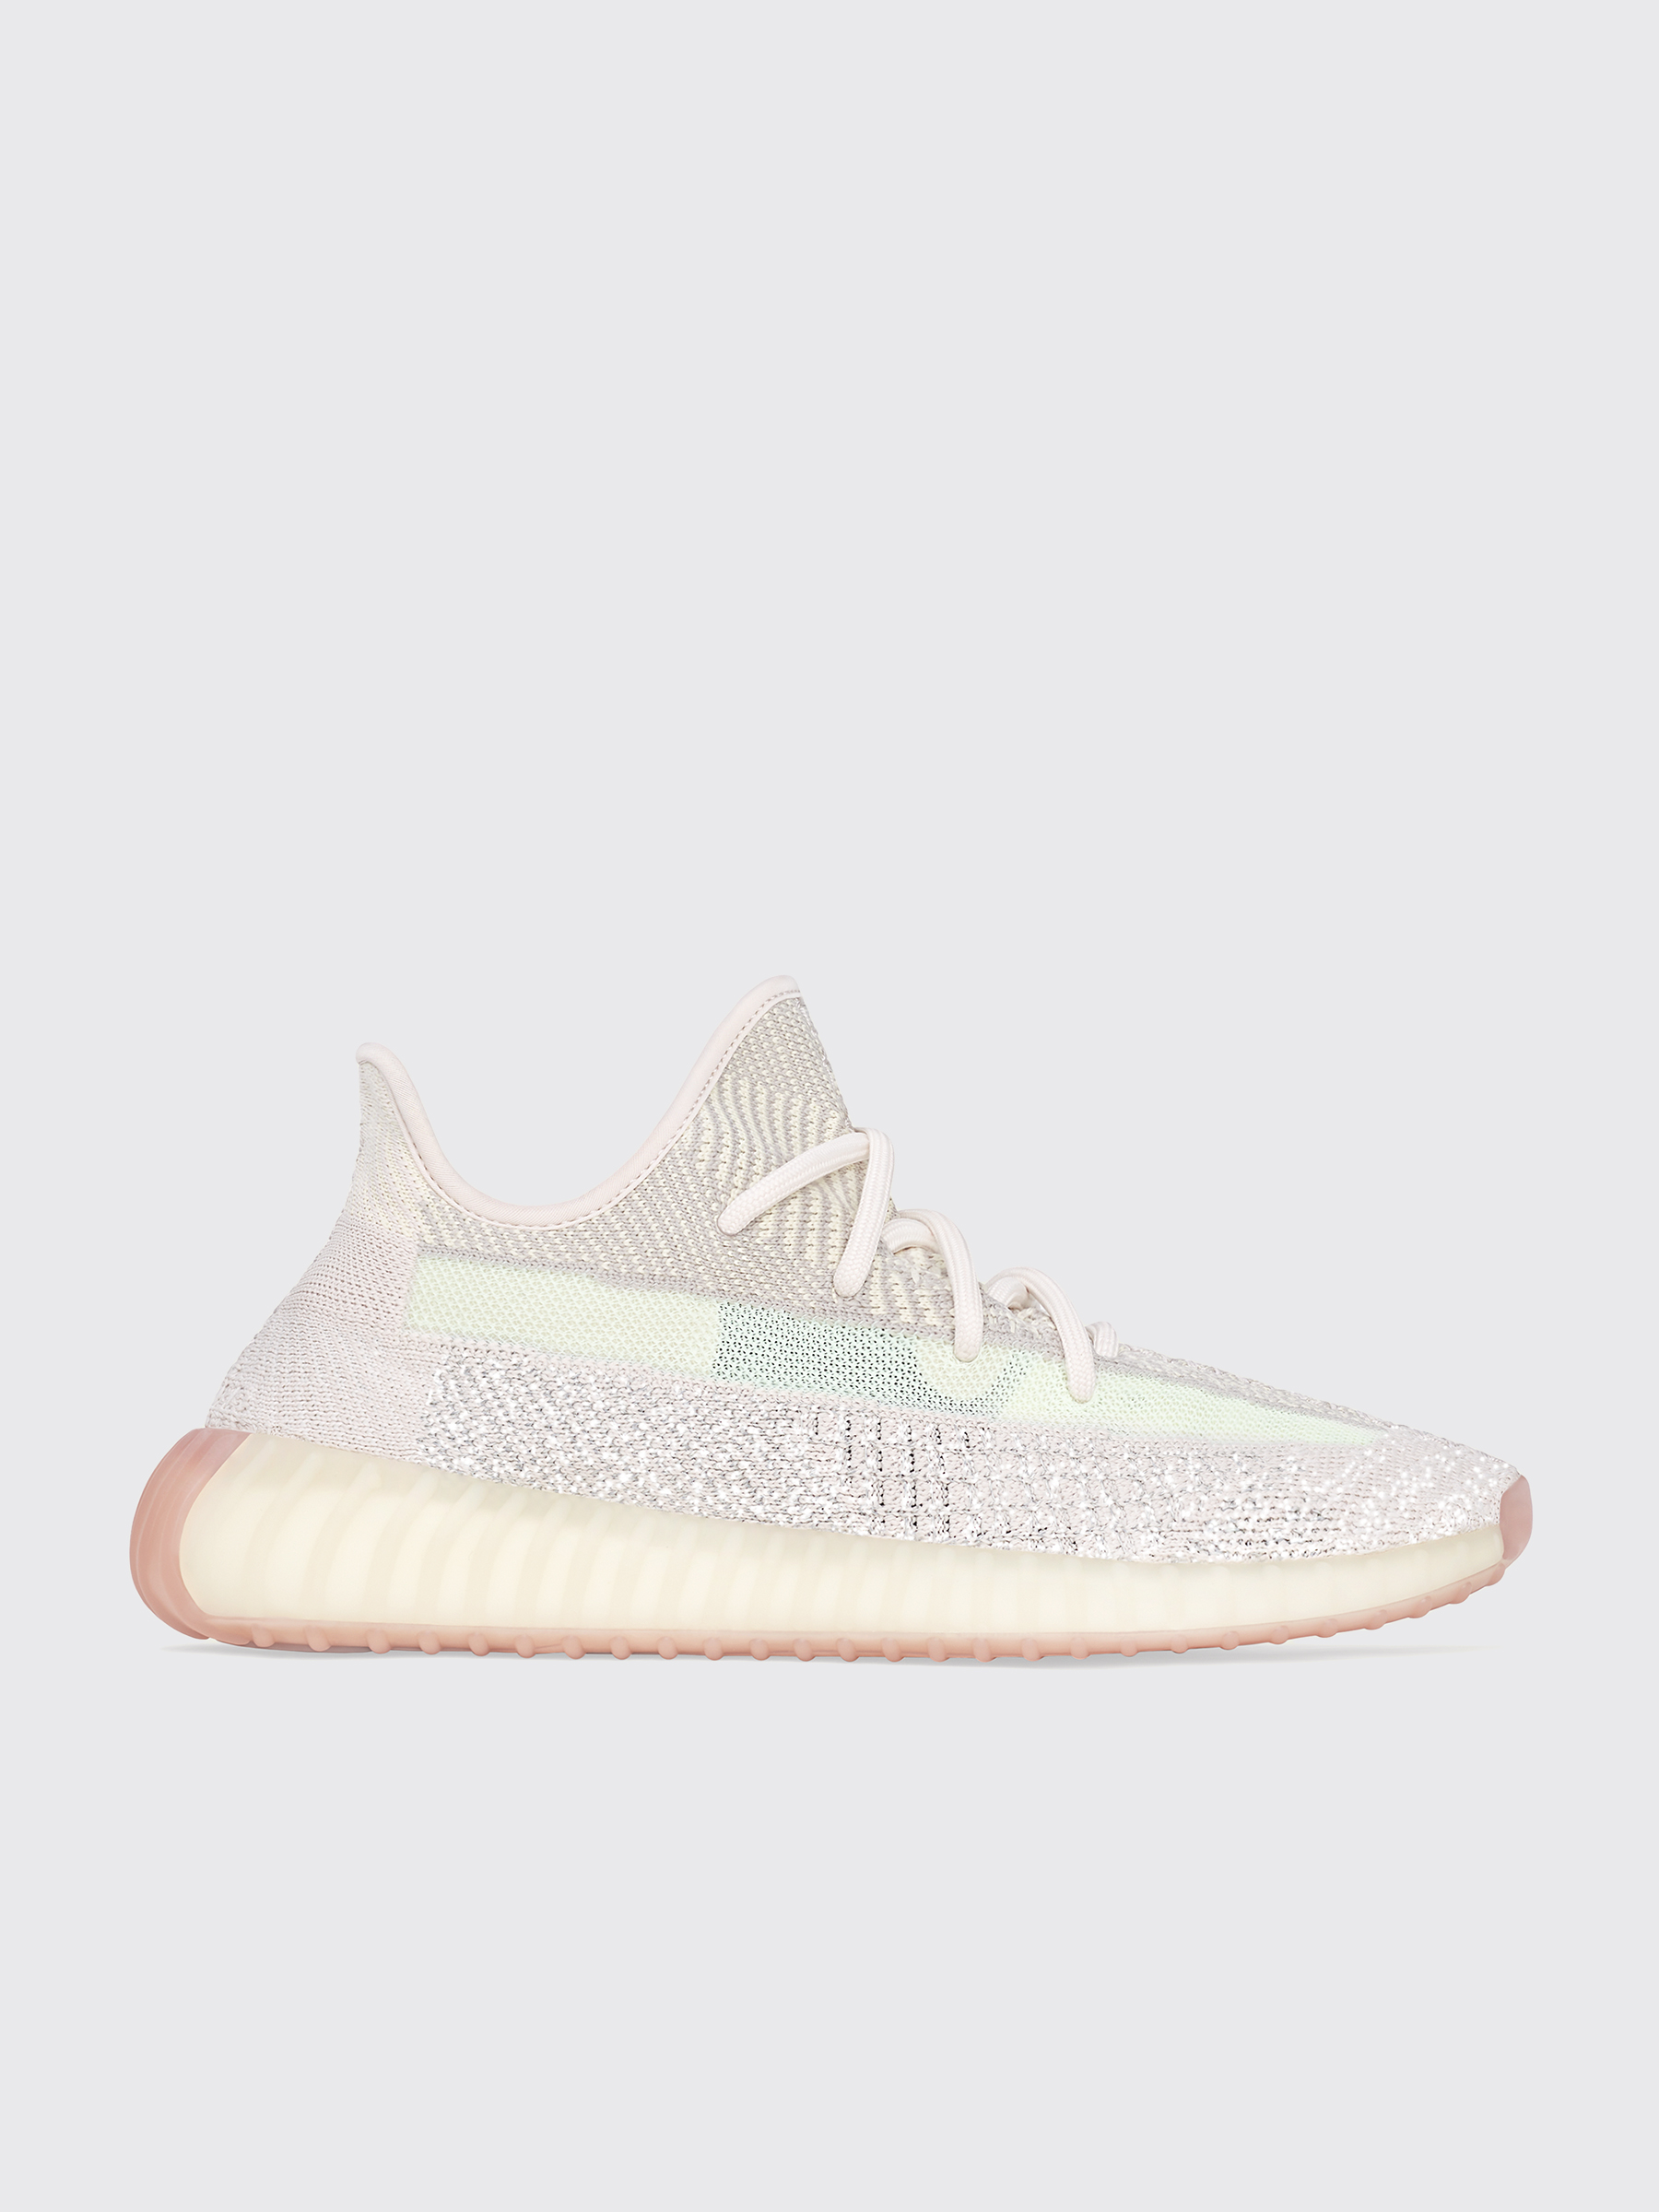 """THE ADIDAS YEEZY 350 BOOST """"WHITE"""" 